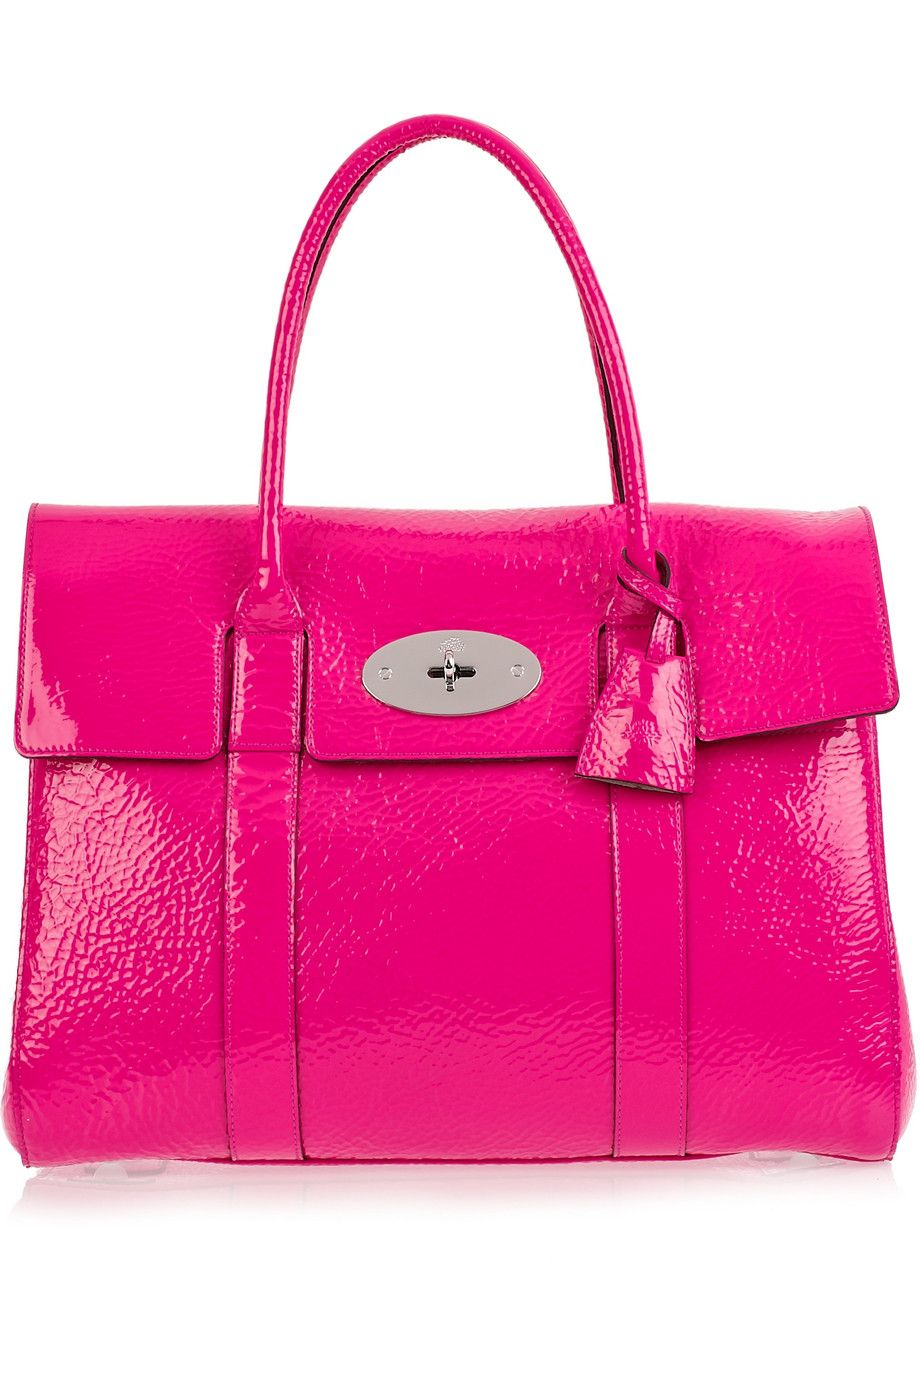 ab5ffffda8 Hot pink Mulberry Bayswater patent-leather bag £766 | Pink | Pink ...